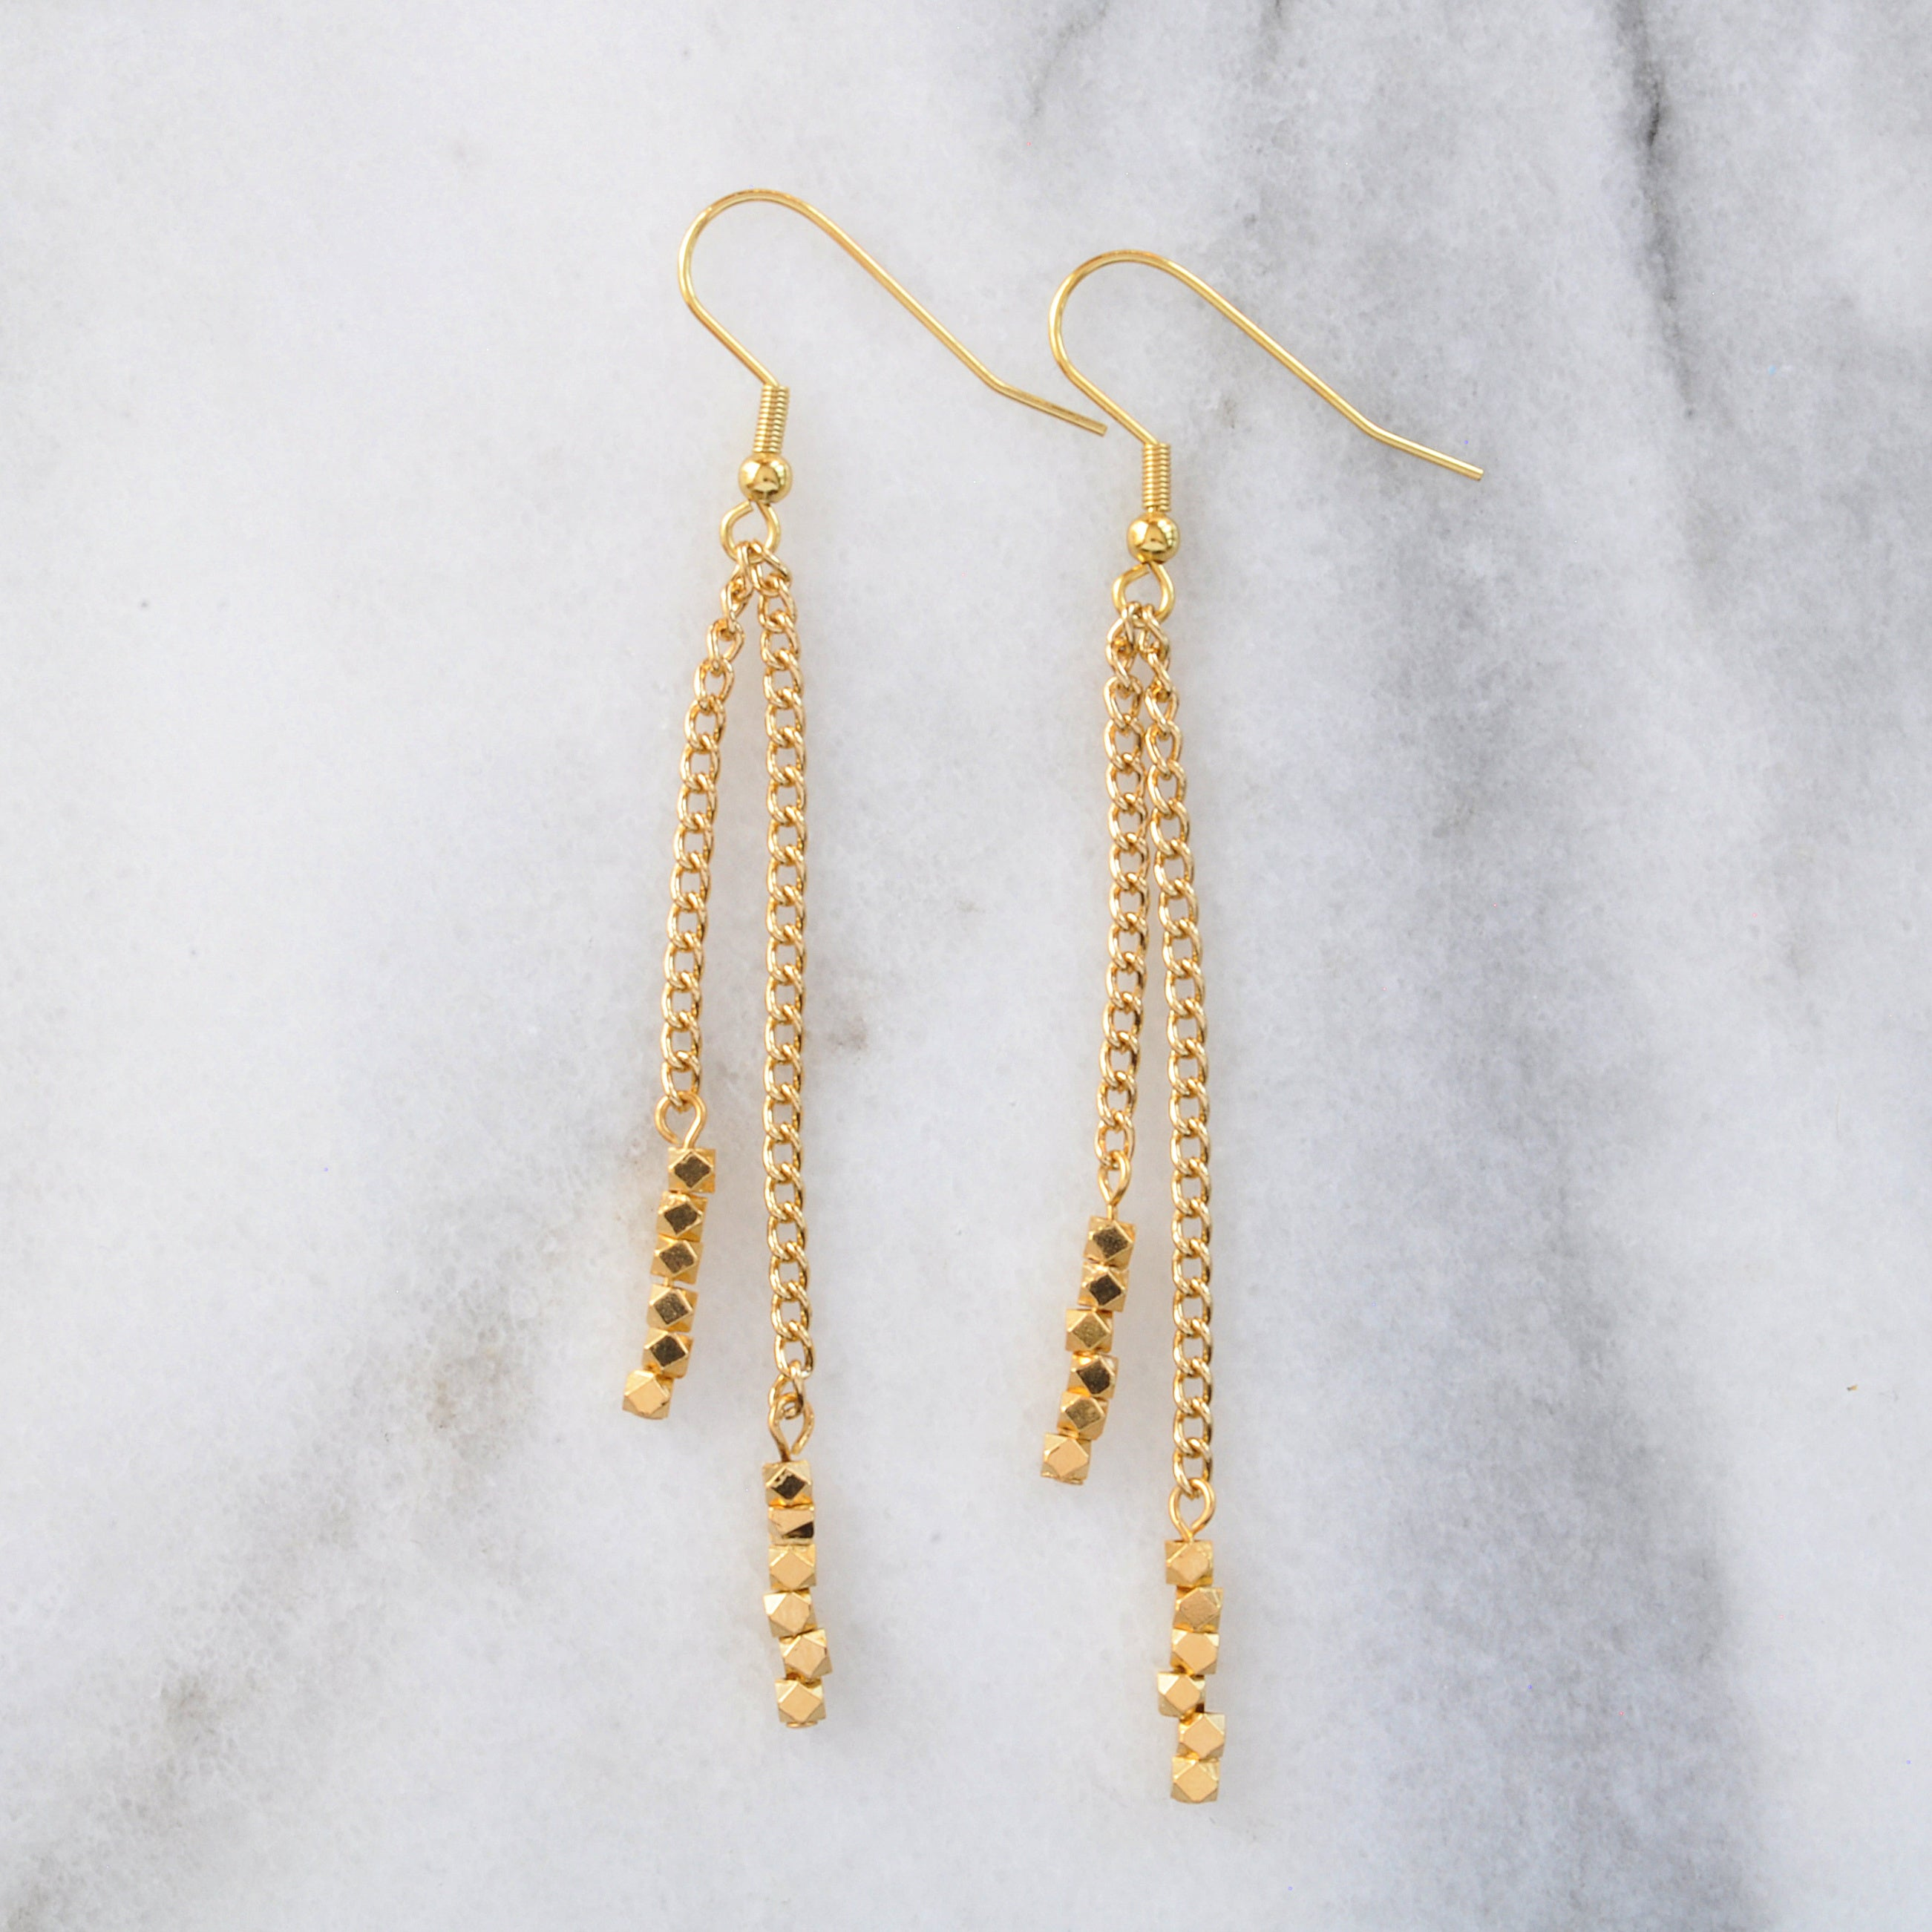 Libby & Smee Gemstone Gold chain Earrings available with gold beads